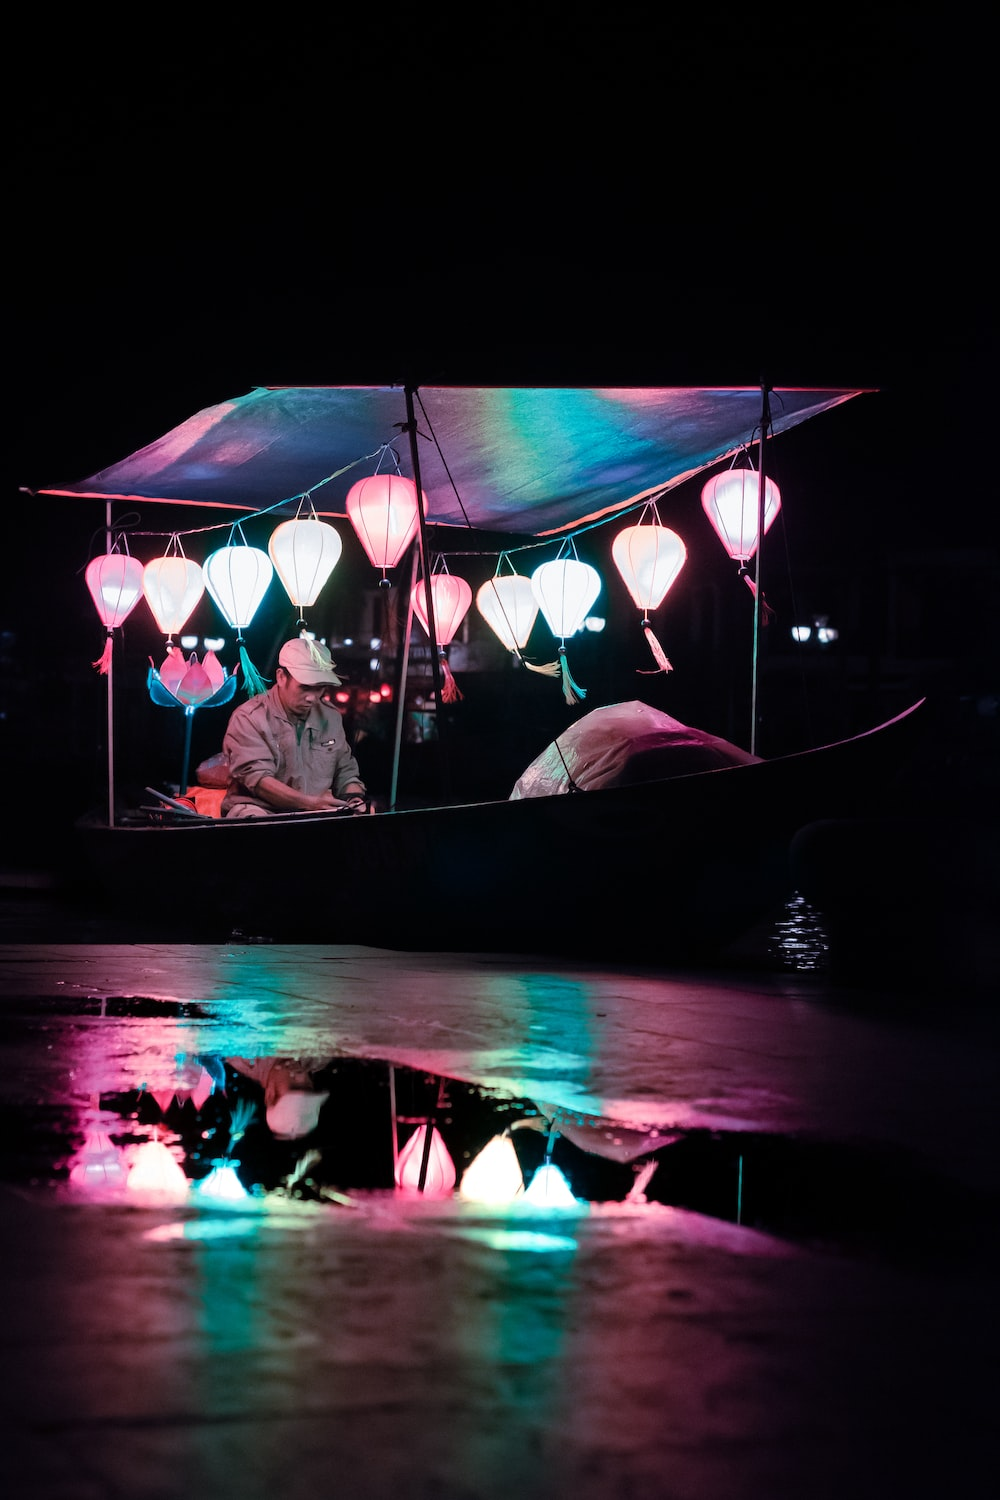 man riding boat with multicolored lanterns at night